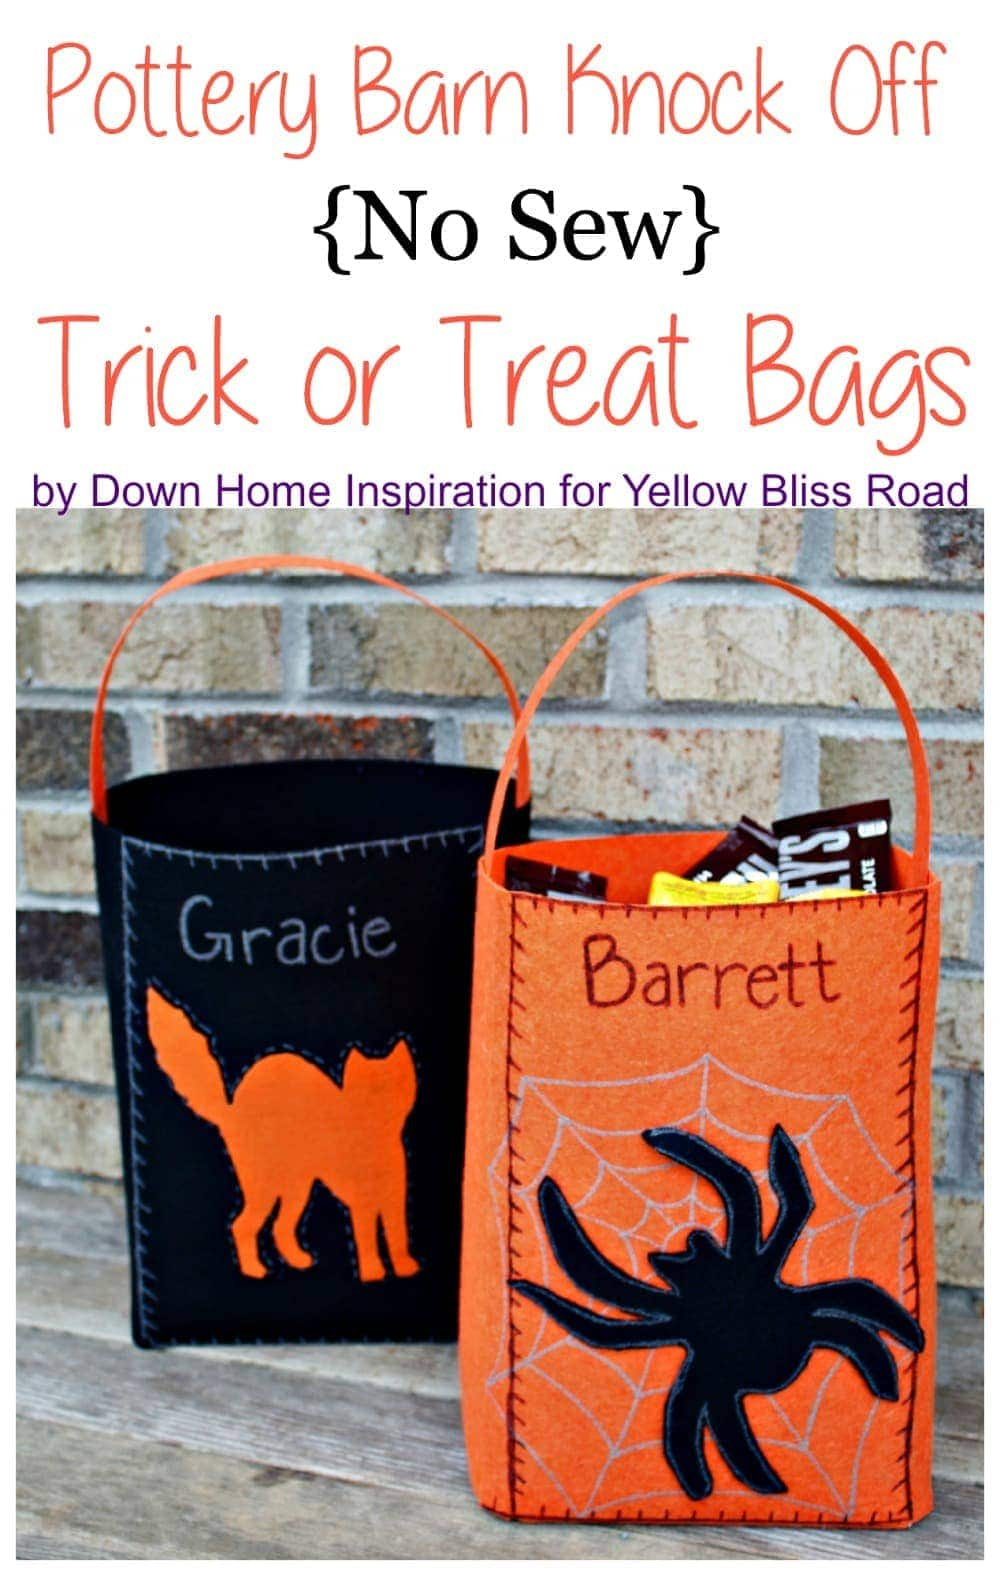 No Sew Pottery Barn Knock-Off Trick or Treat Bags